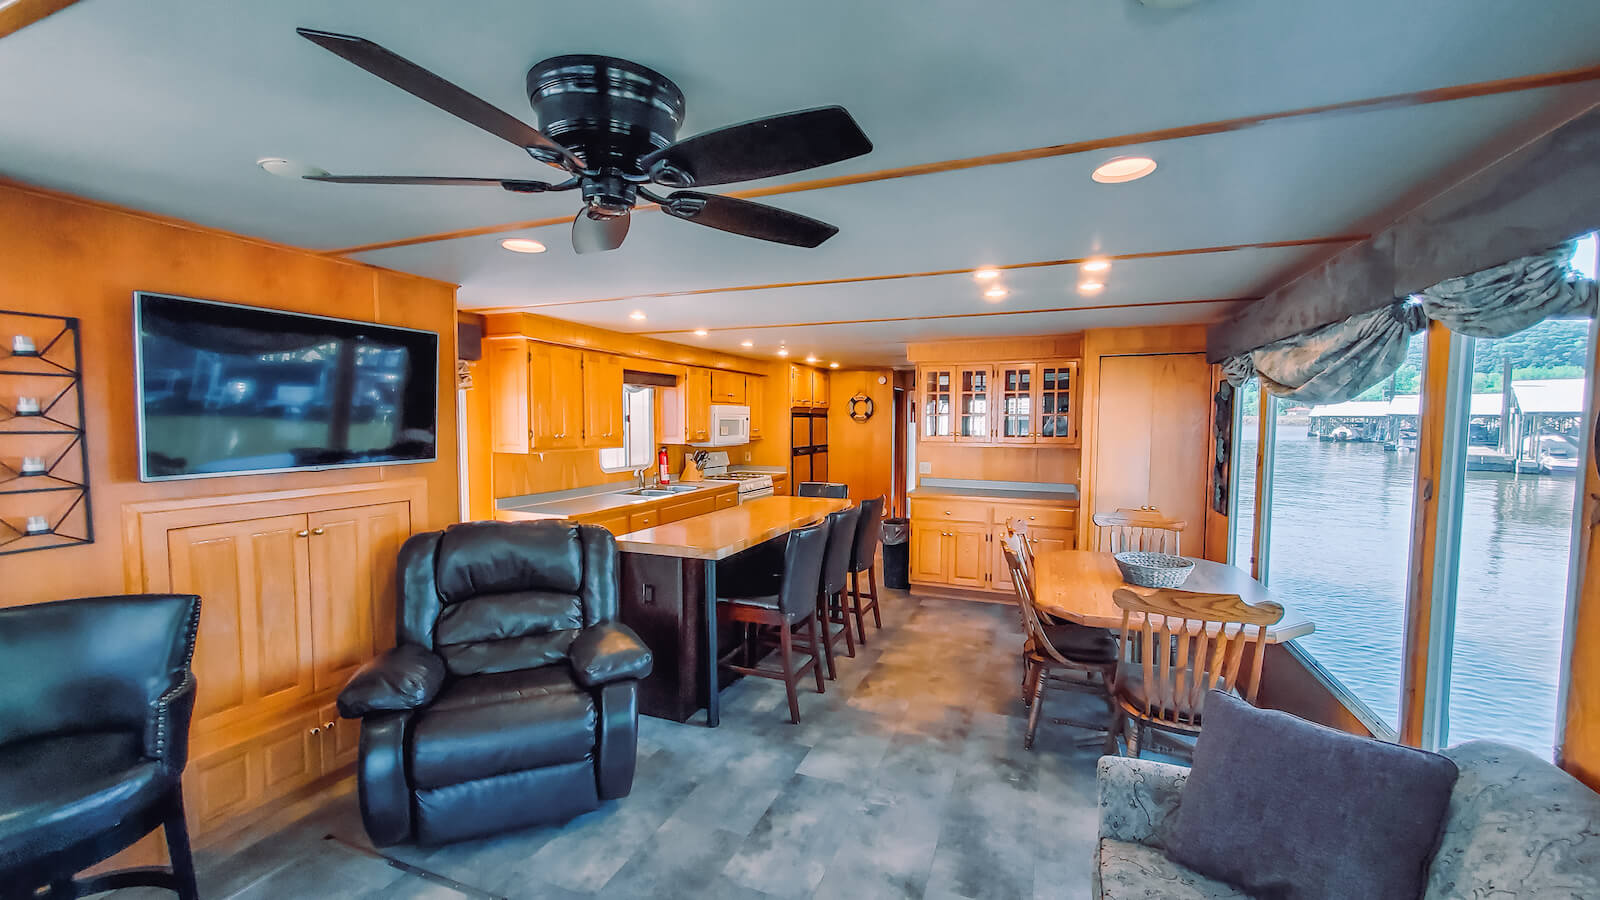 Living room in the S&S Rentals Riverview 62' houseboat